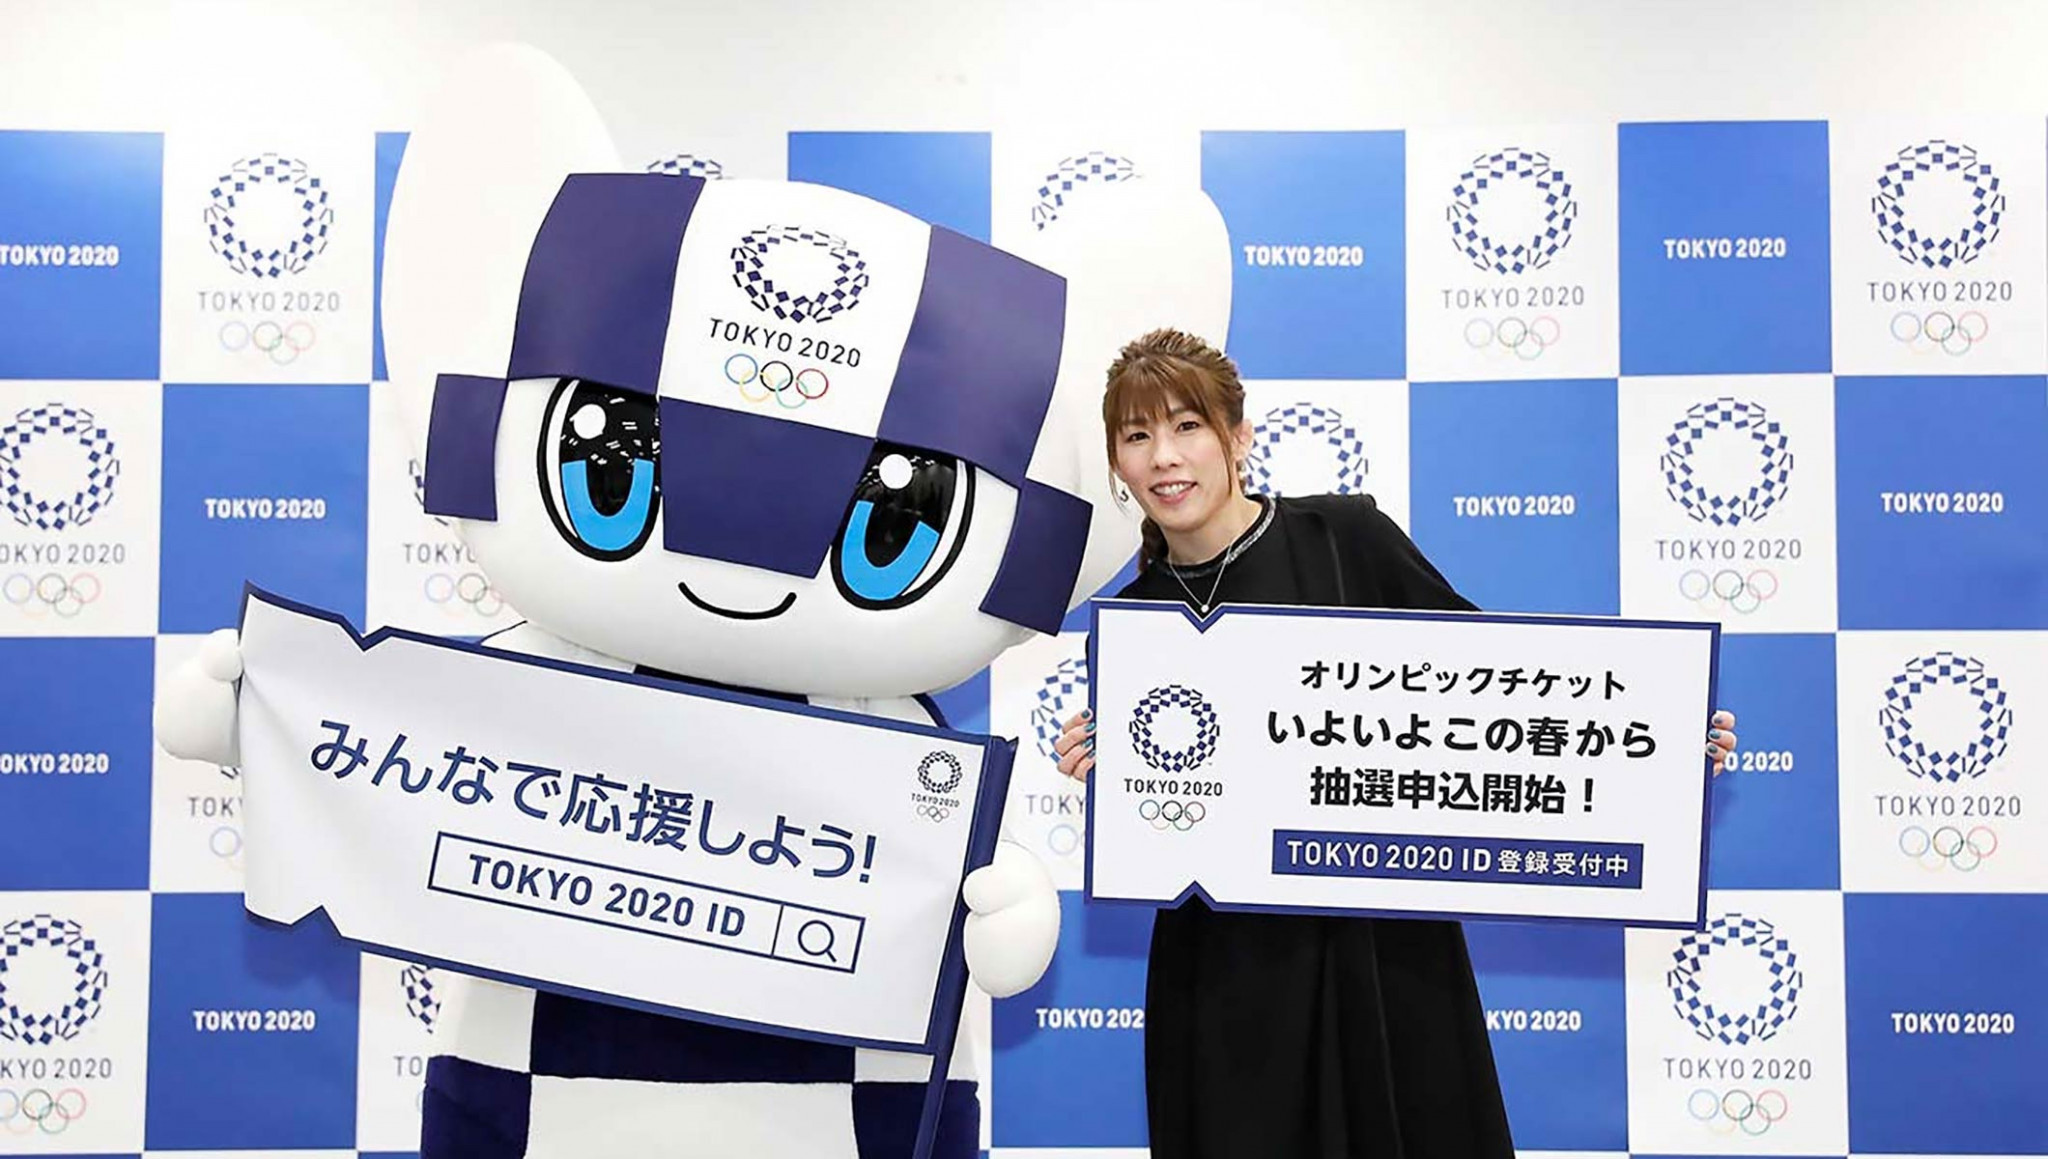 Tokyo 2020 organisers have voided nearly 7,000 tickets obtained fraudulently ©Tokyo 2020